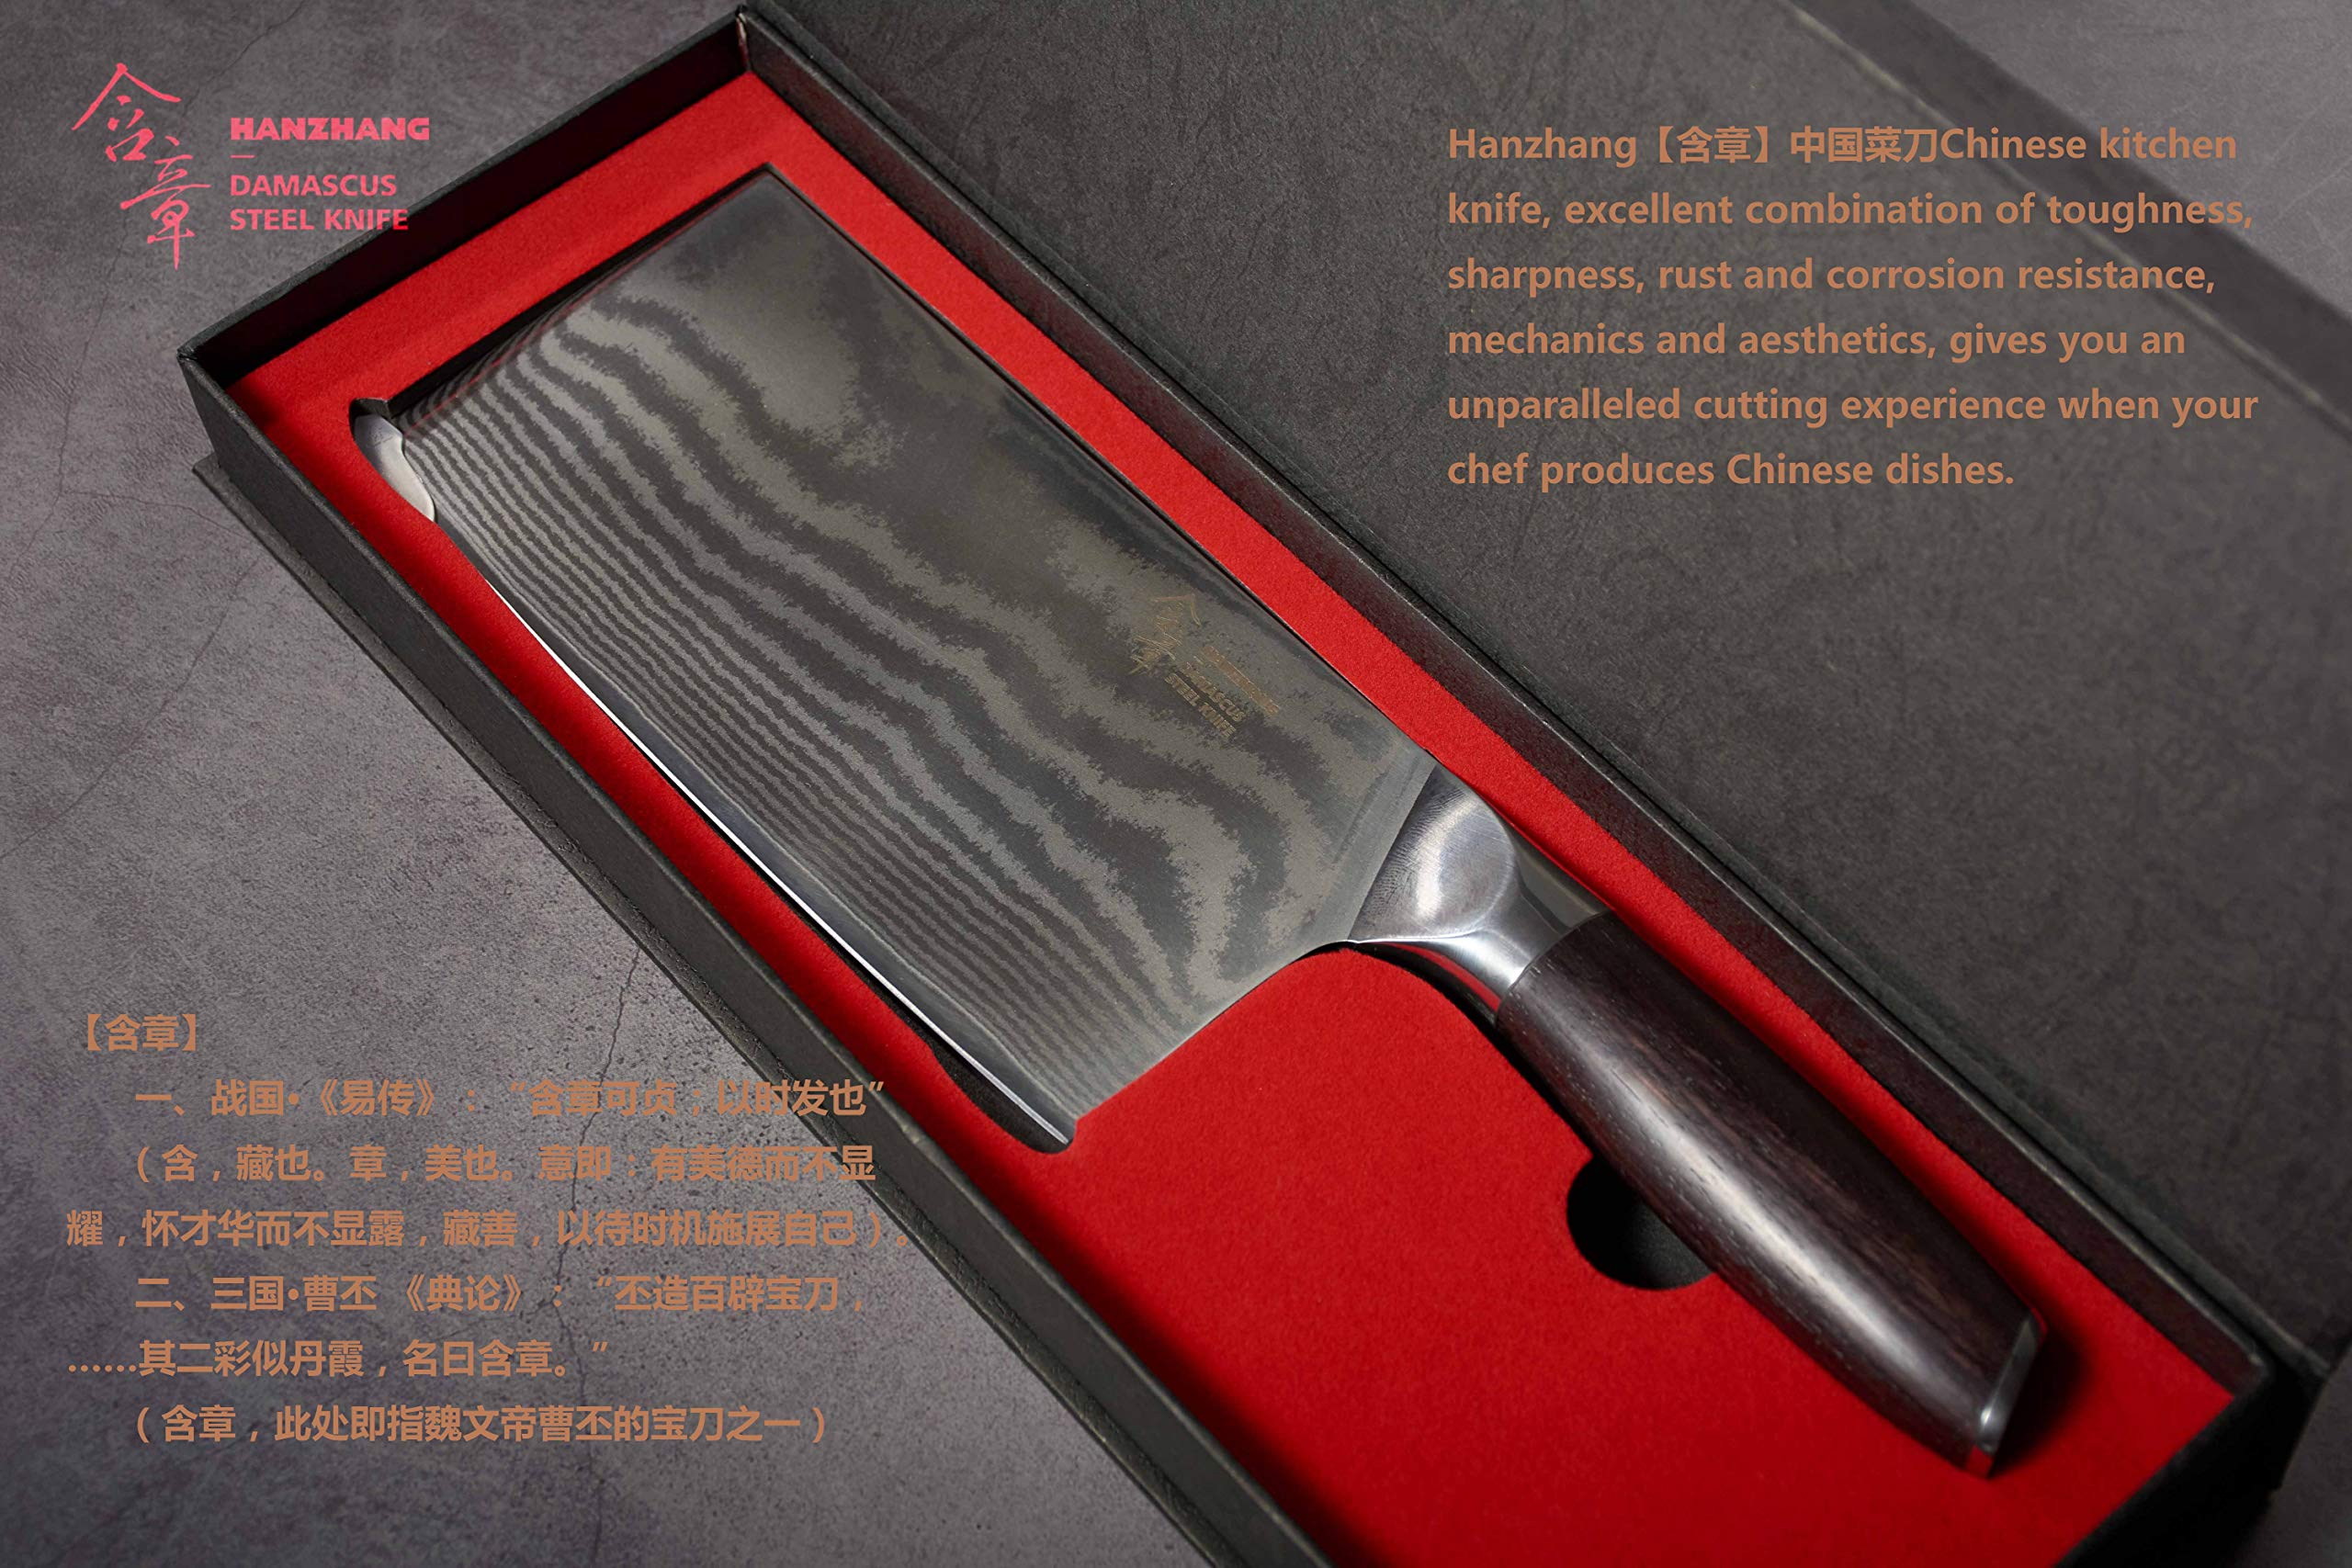 Hanzhang【含章】 刀品-菜刀CaiDao Made of Real 67-Layer Damascus Steel Refined Traditional Chinese Kitchen Knife by Hanzhang【含章】 (Image #2)